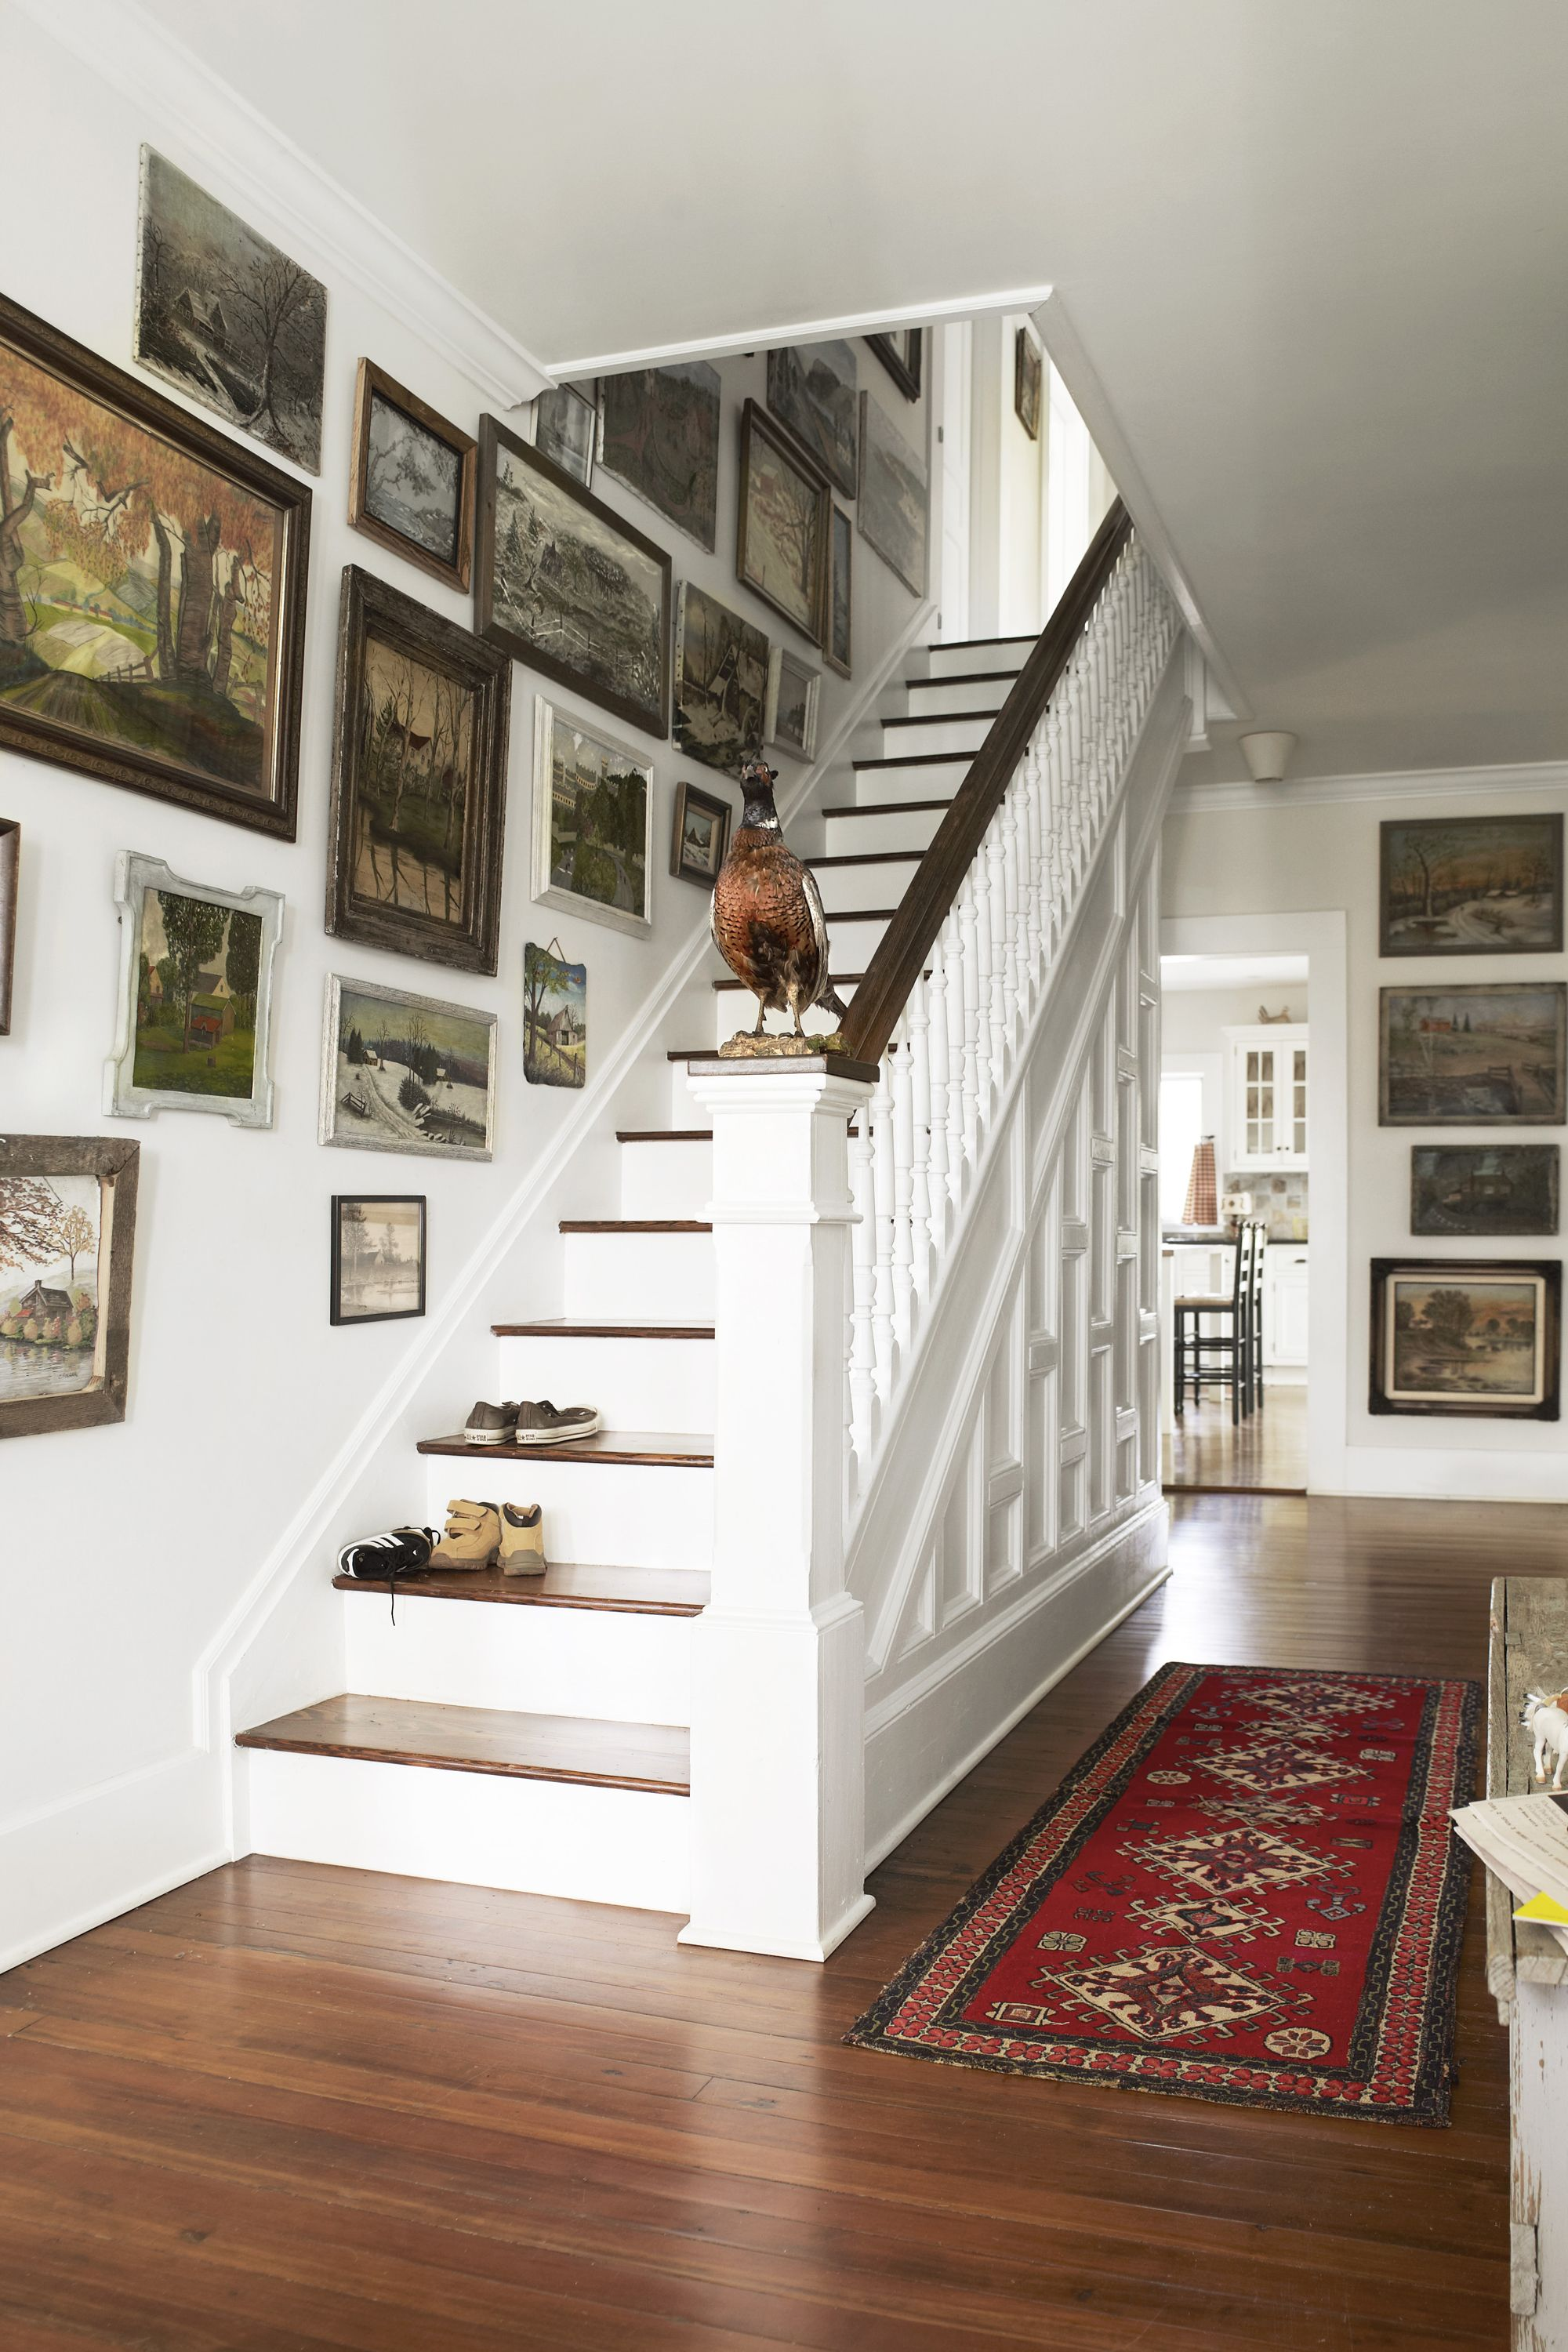 44 staircase design ideas beautiful ways to decorate a stairway rh countryliving com